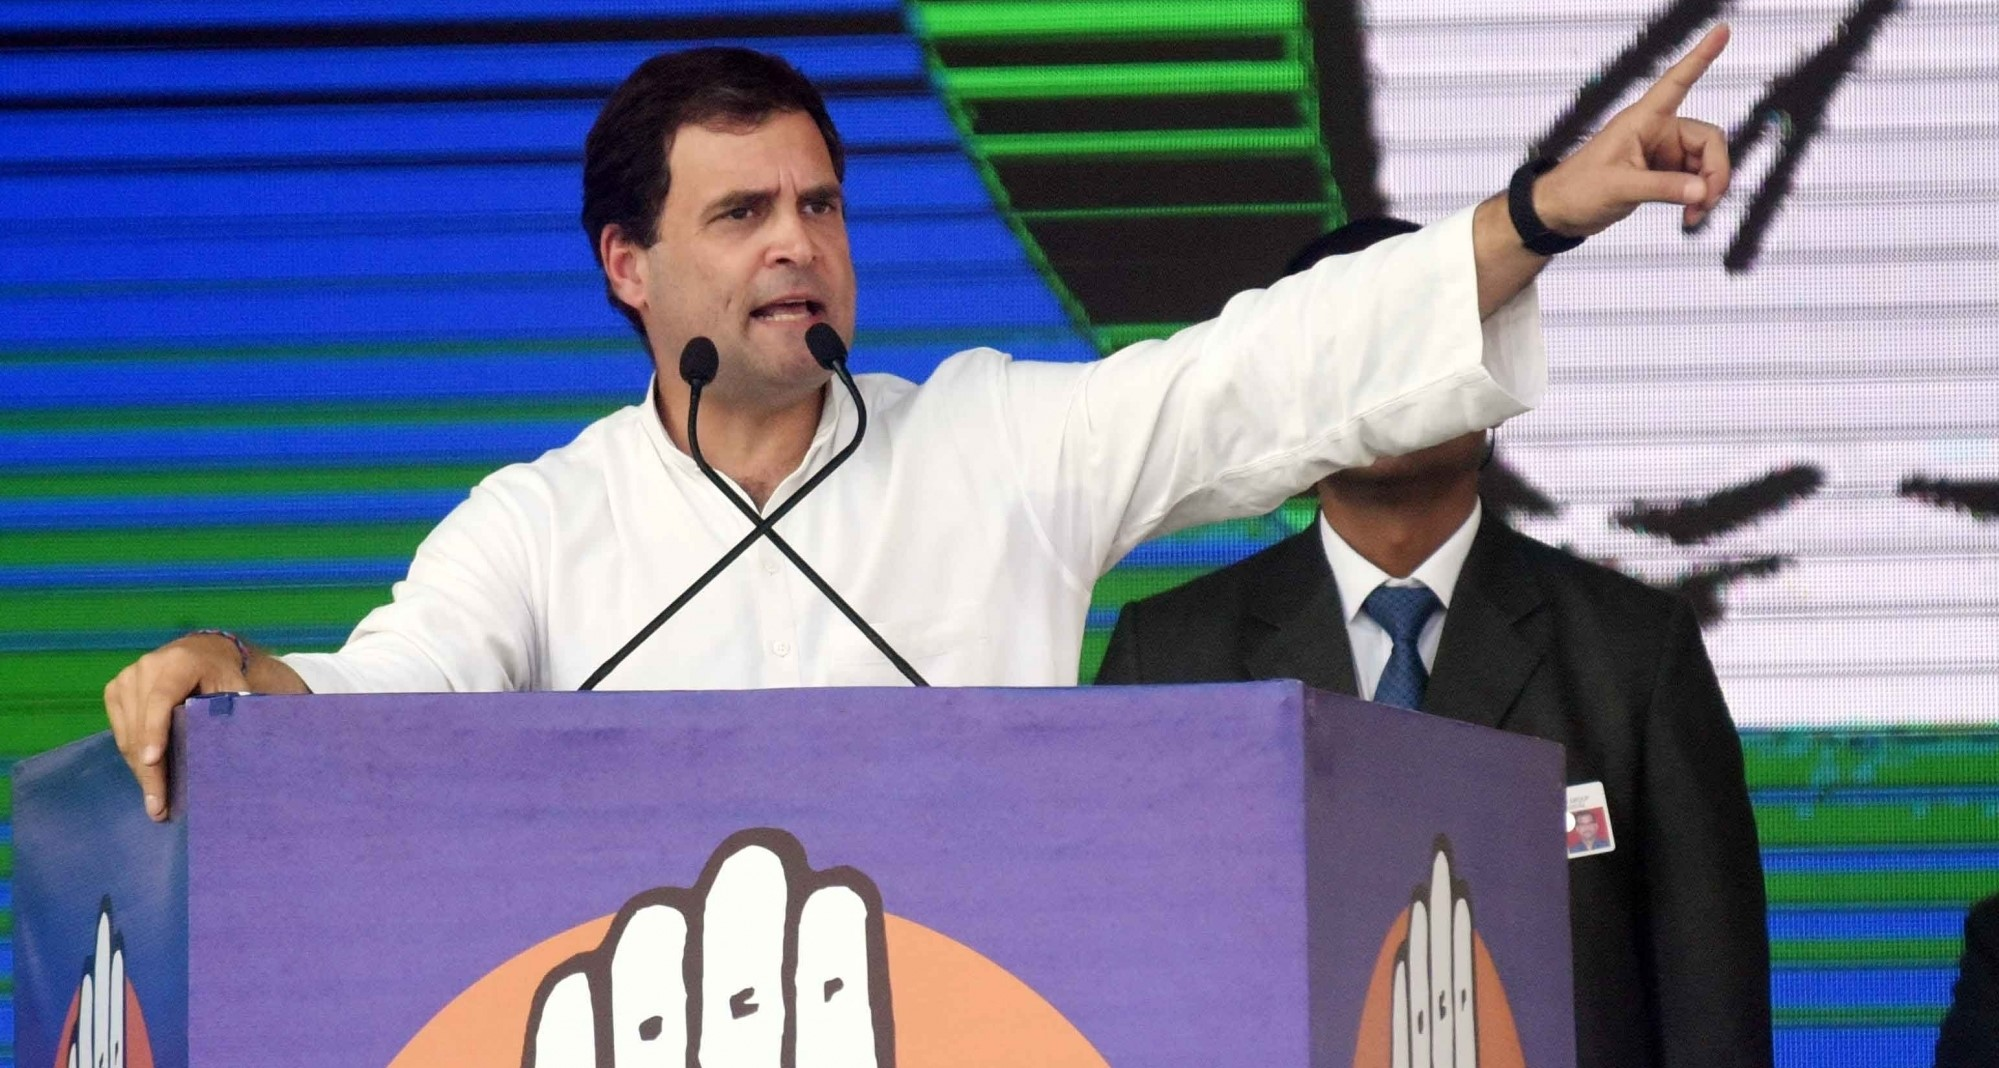 Strict action against those involved in Punjab `sacrilege' cases: Rahul